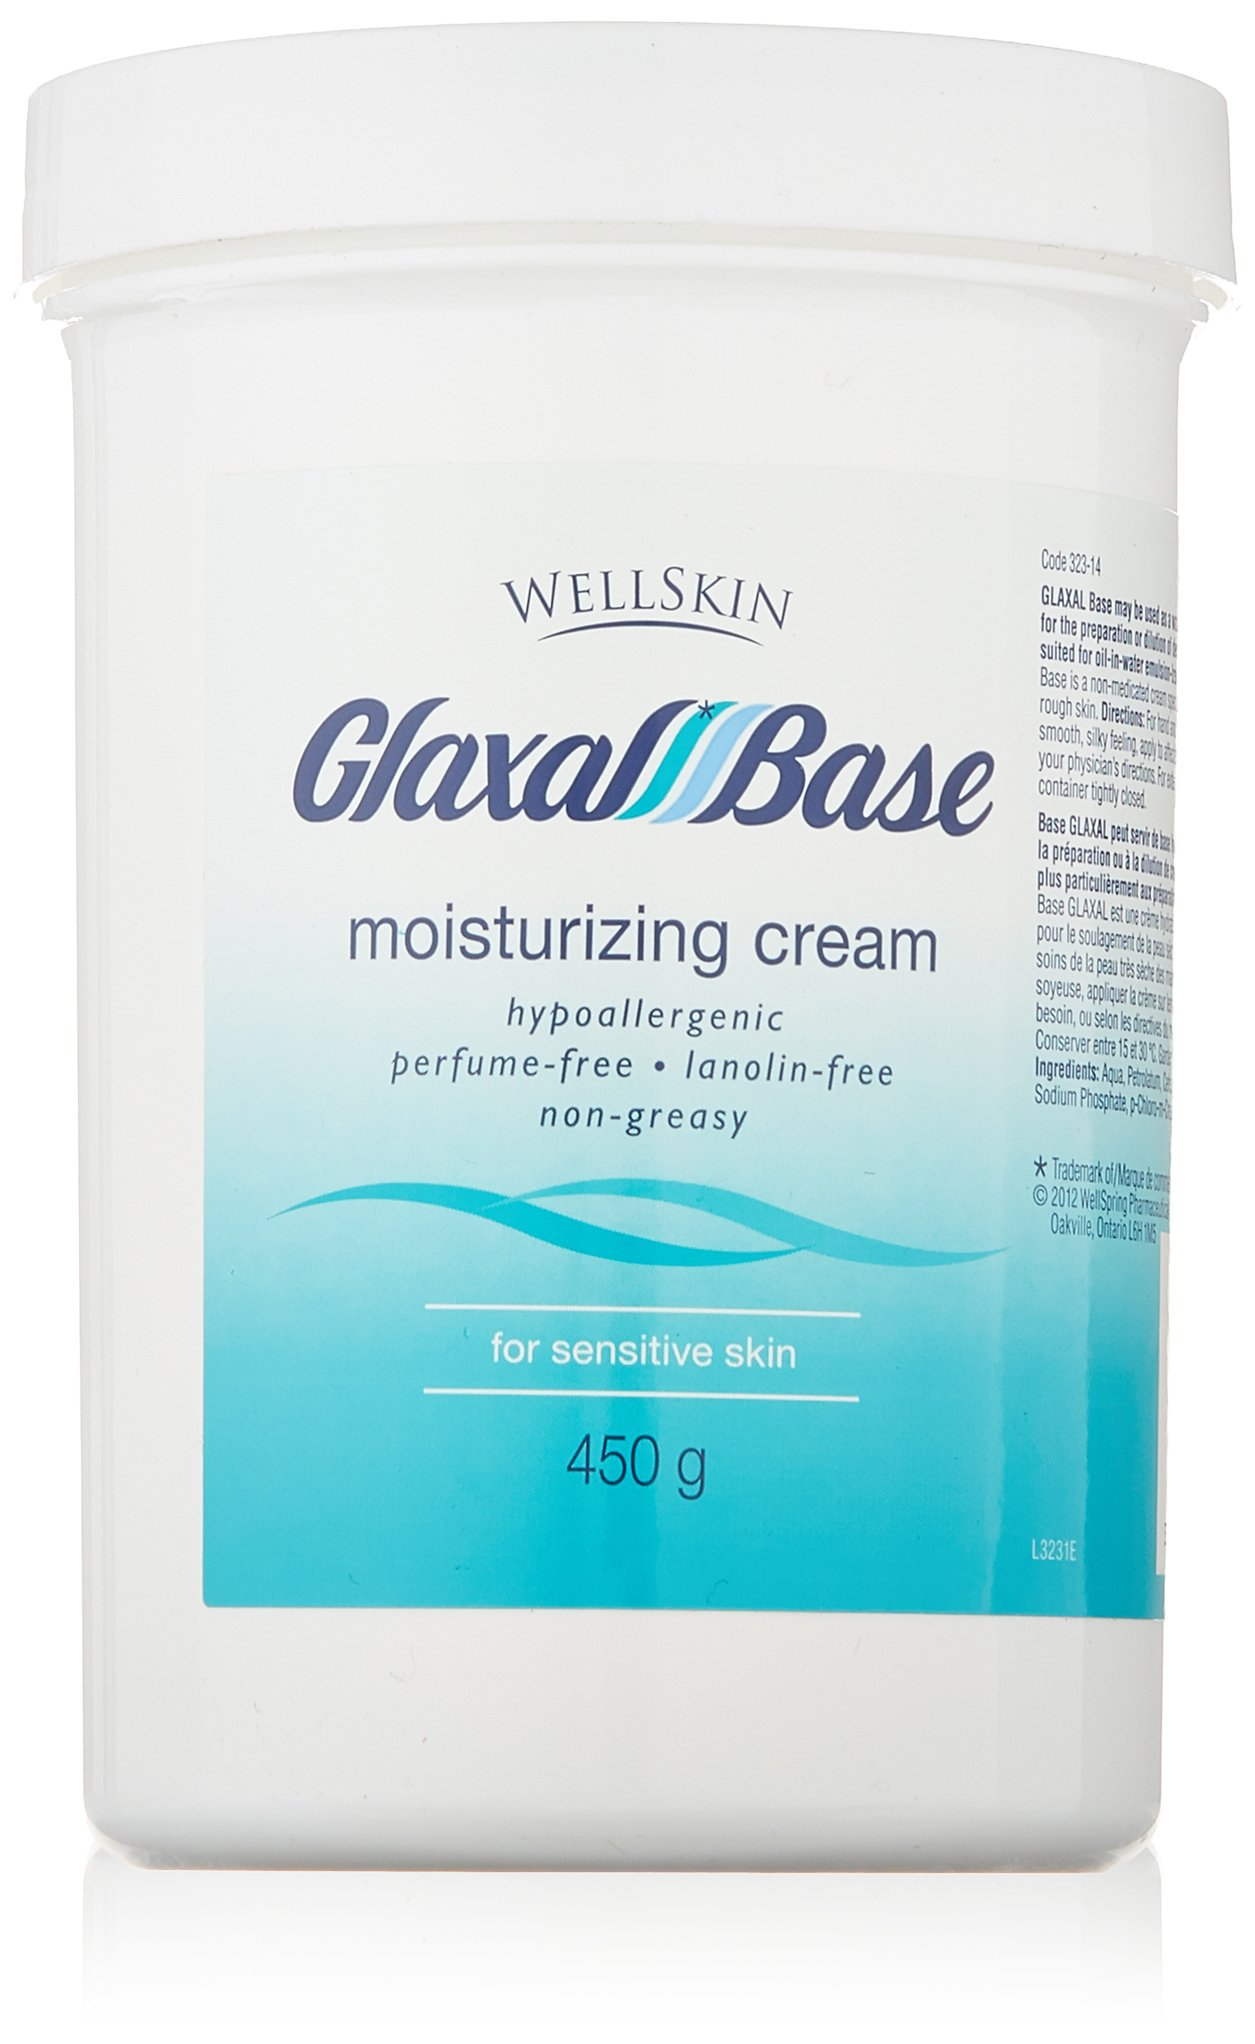 Wellskin Glaxal Base Moisturizing Cream - 450g (15.9 Oz) Large Size